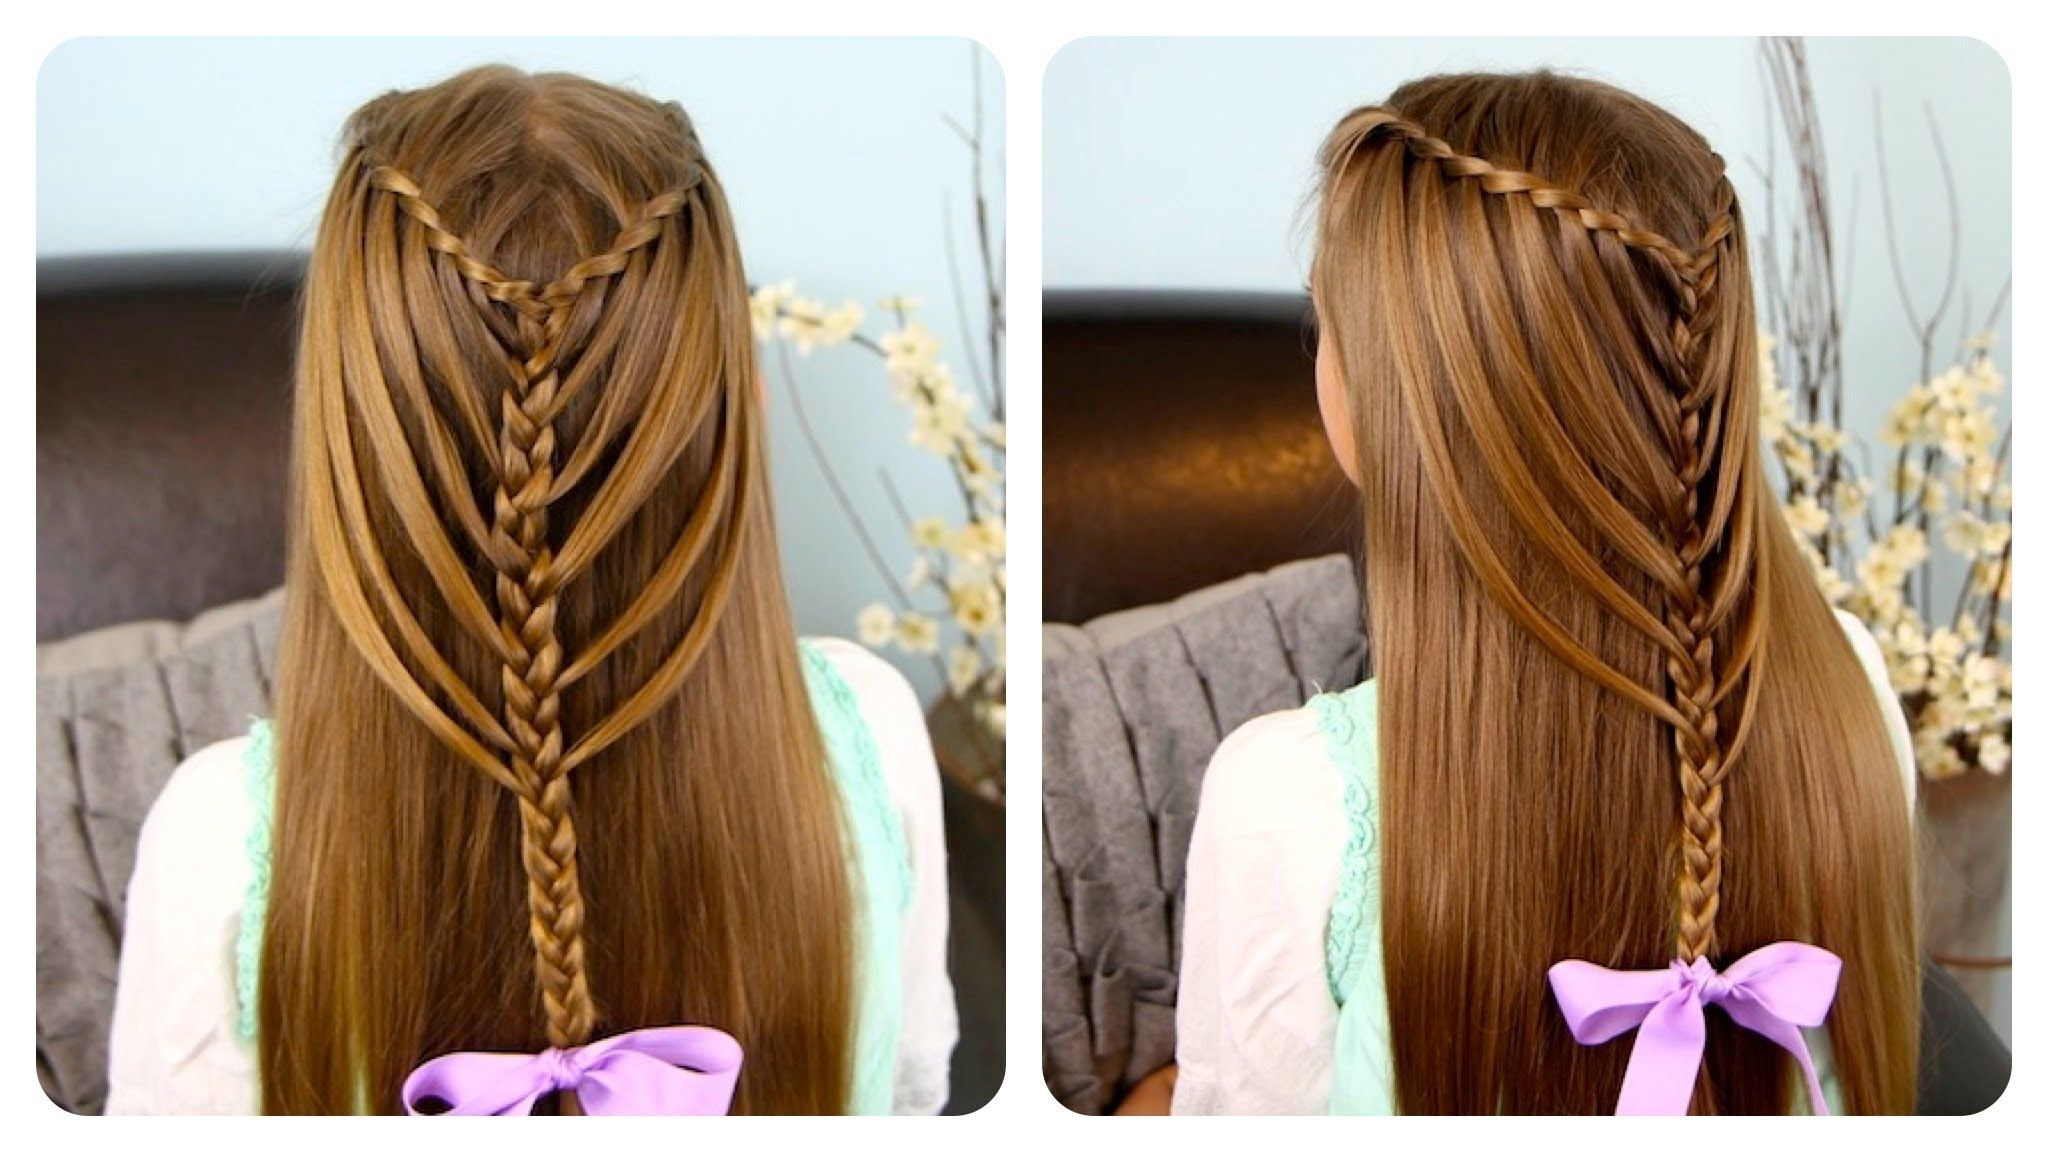 Long Hairstyles With Braids Top 20 Long Blonde Hairstyles Headband Hairstyles Hairstyles